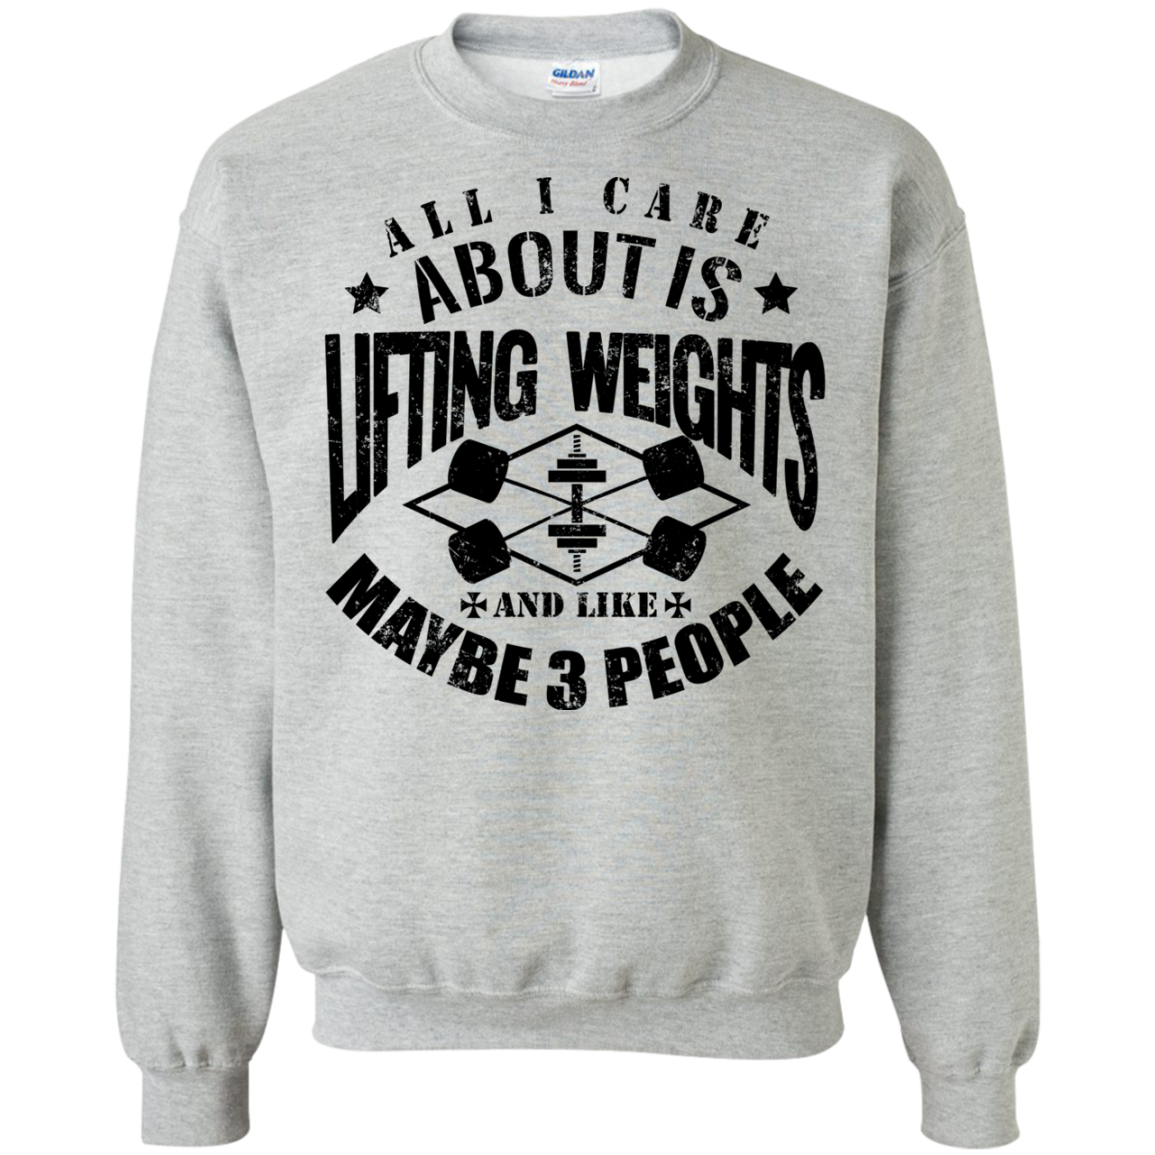 All I Care About Is Lifting Weights & Maybe Like 3 People T-Shirt Hoodie Long sleeve Sweatshirt - The Sun Cat